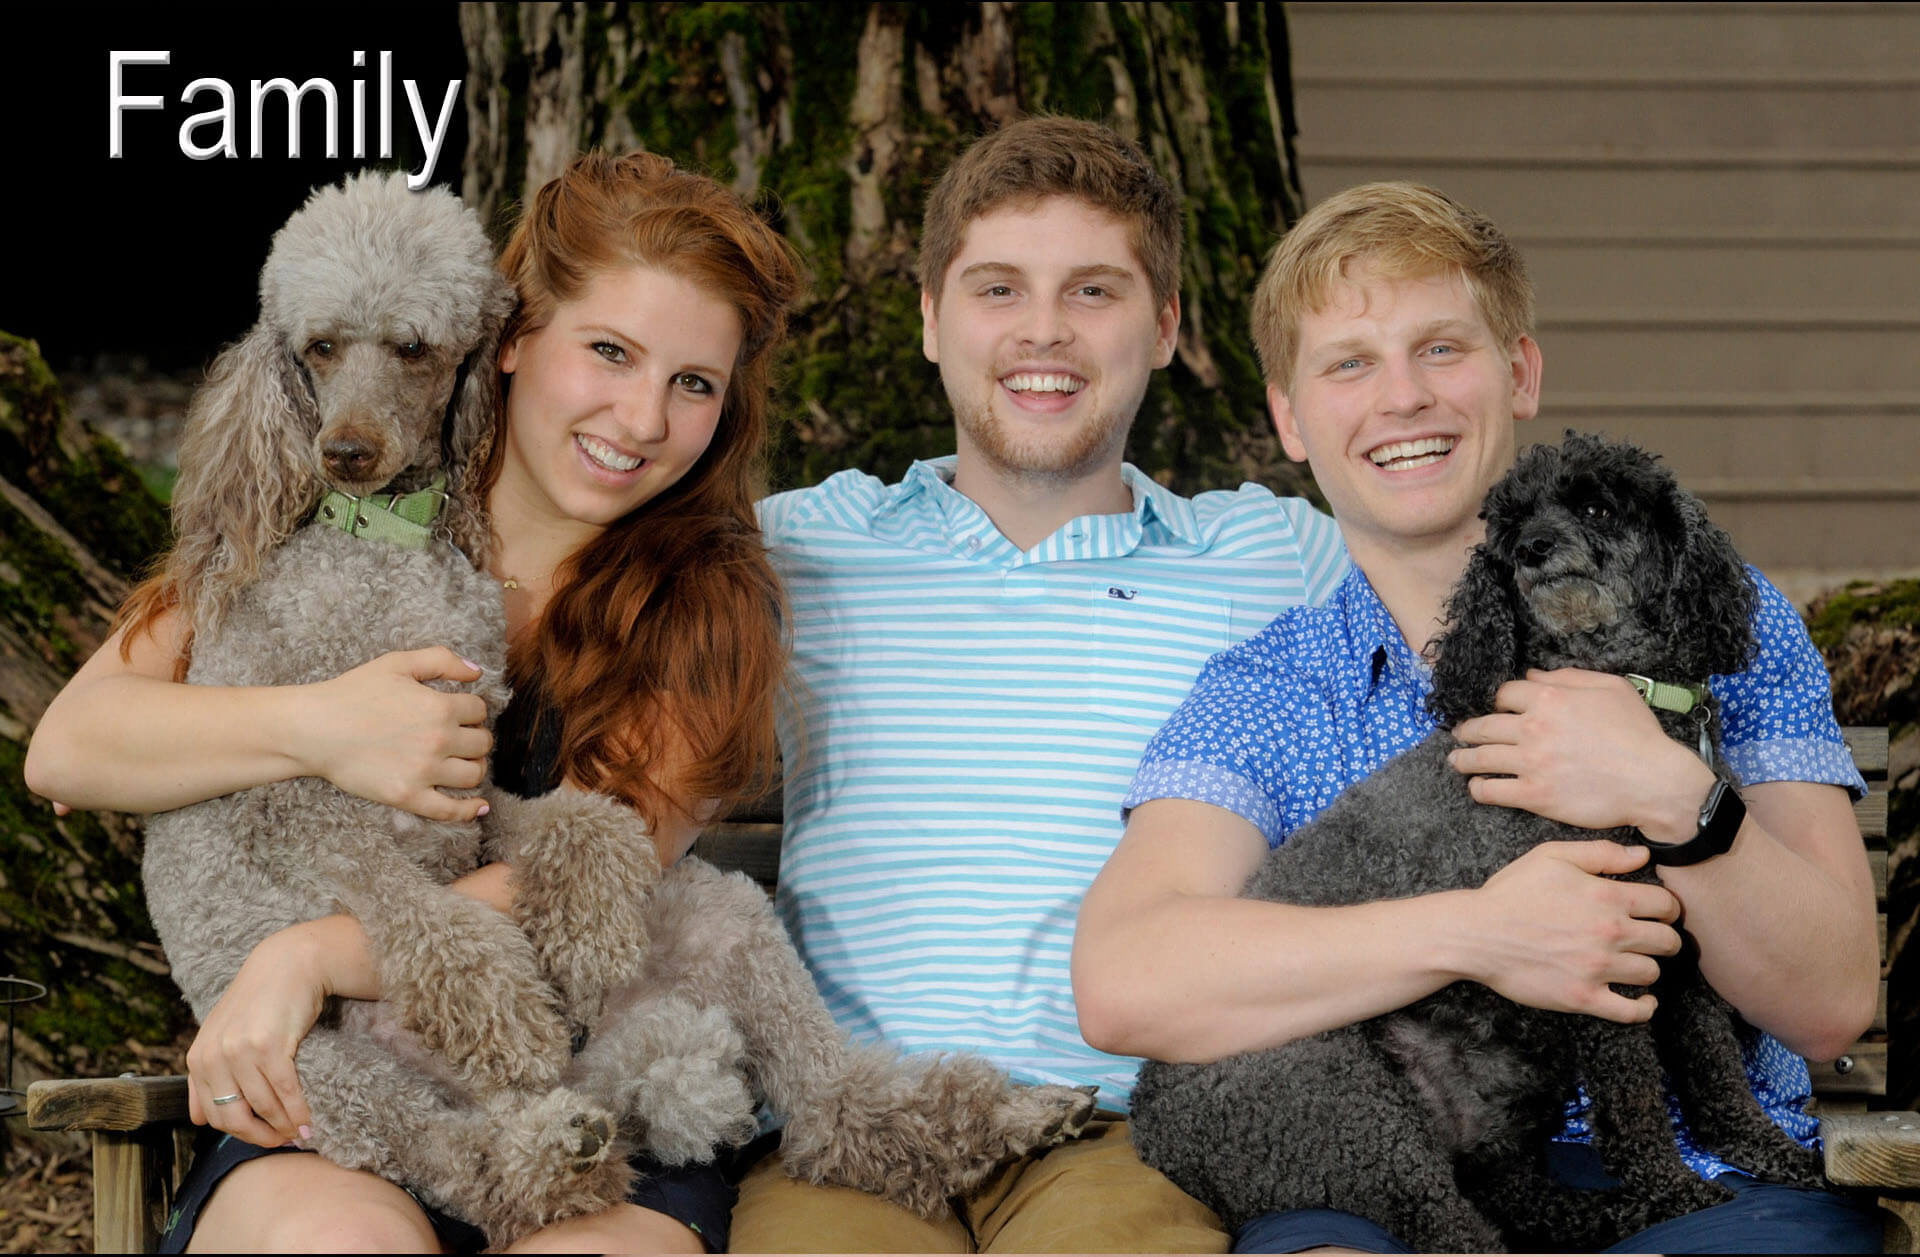 A Troy, Michigan family poses with their beloved poodles.